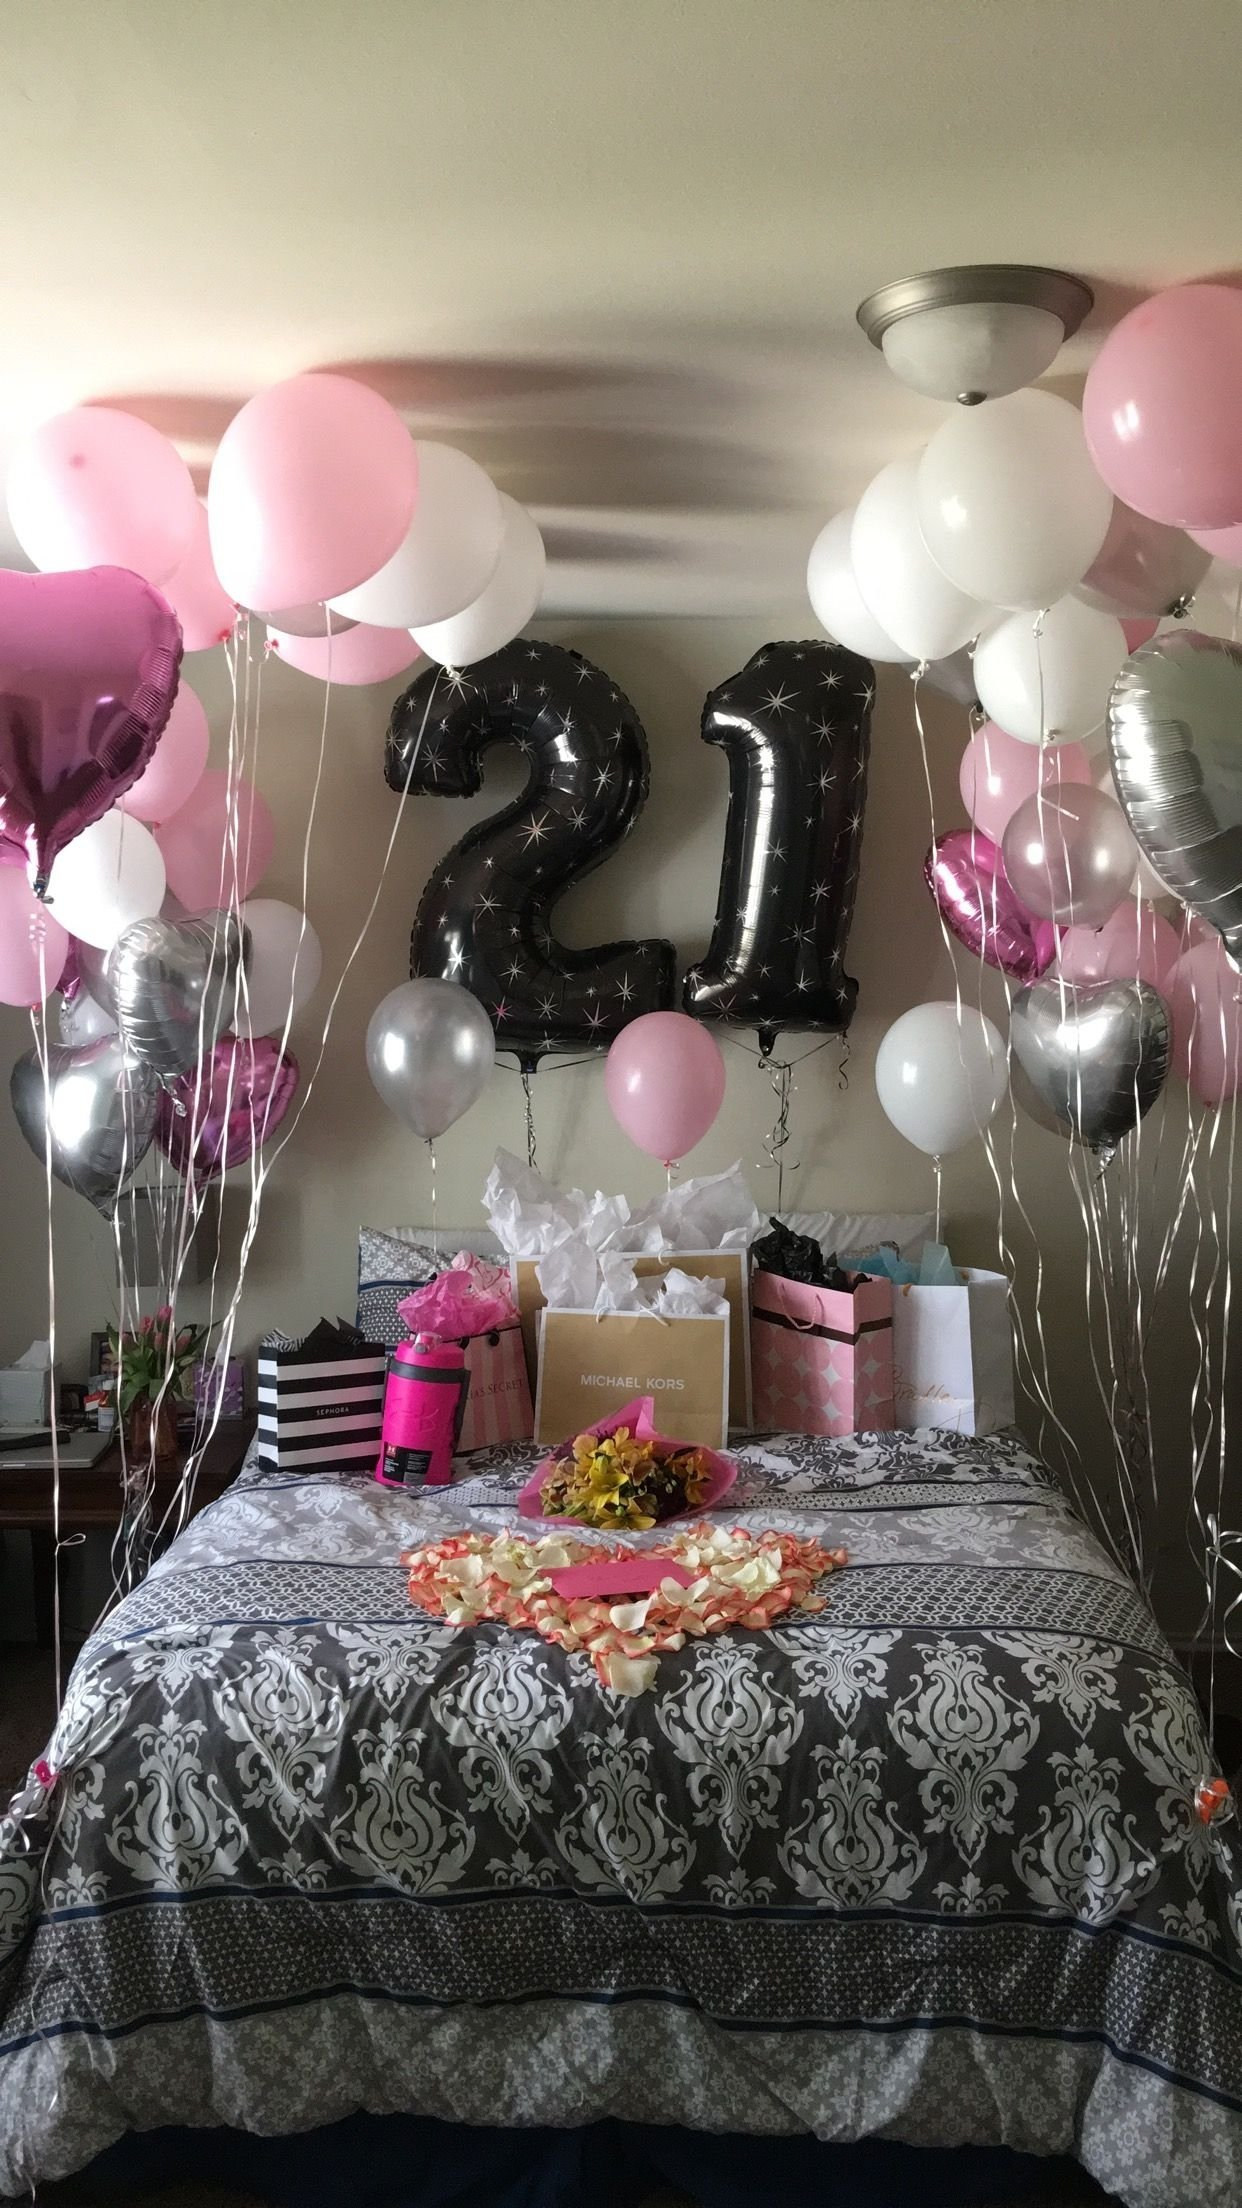 21st birthday surprise! | girlfriends birthday | pinterest | 21st